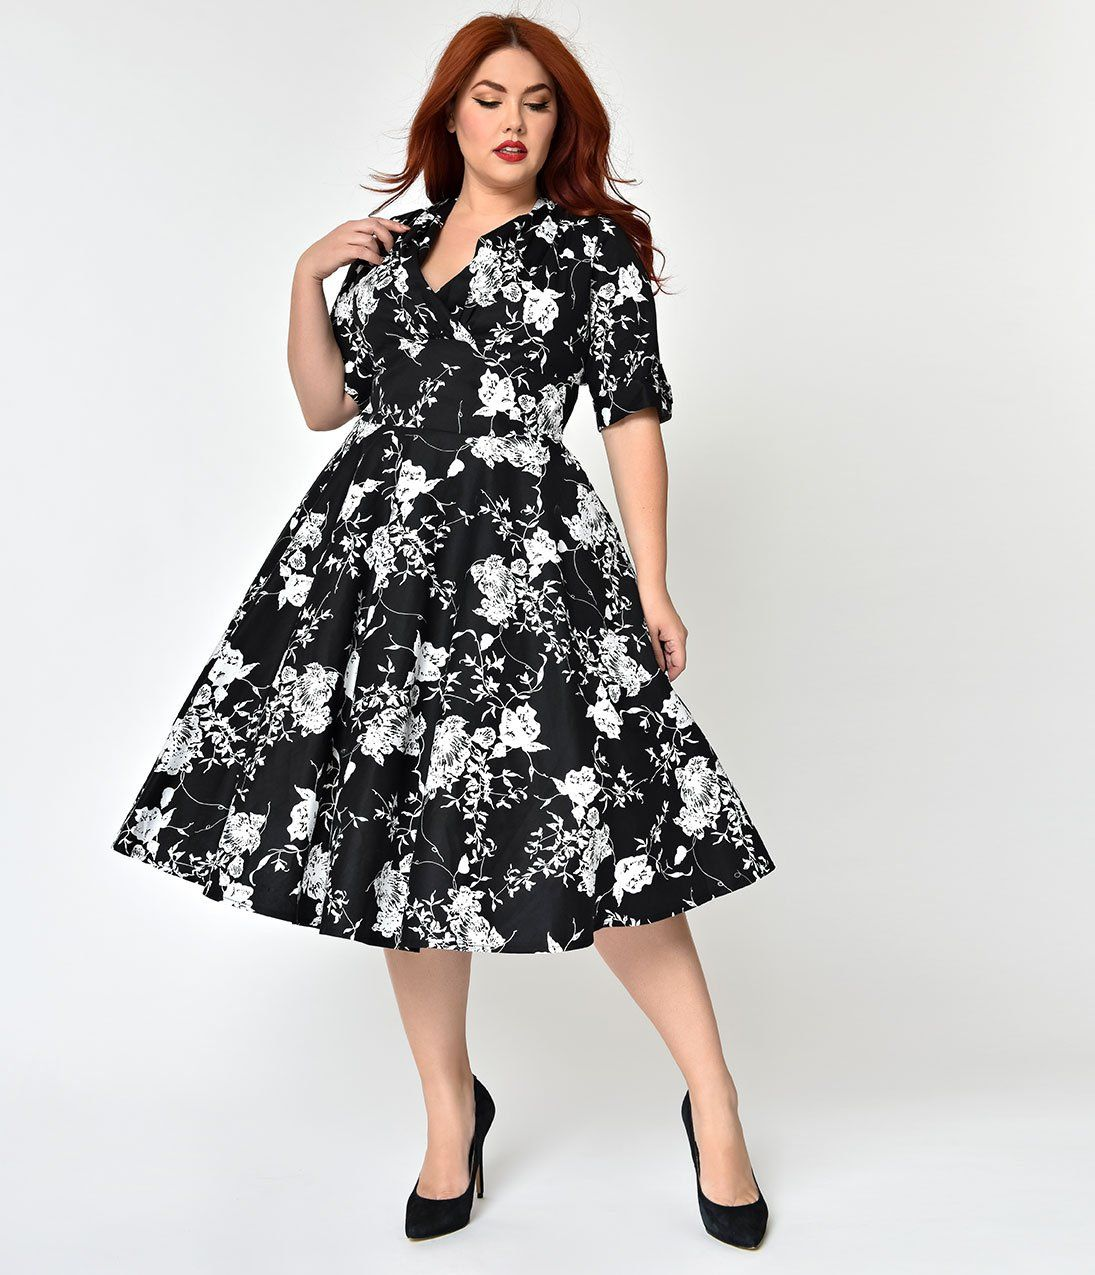 Plus Size Retro Dresses 50s 60s 70s 80s 90s Plus Size Vintage Dresses Plus Size Dresses Plus Size Fashion